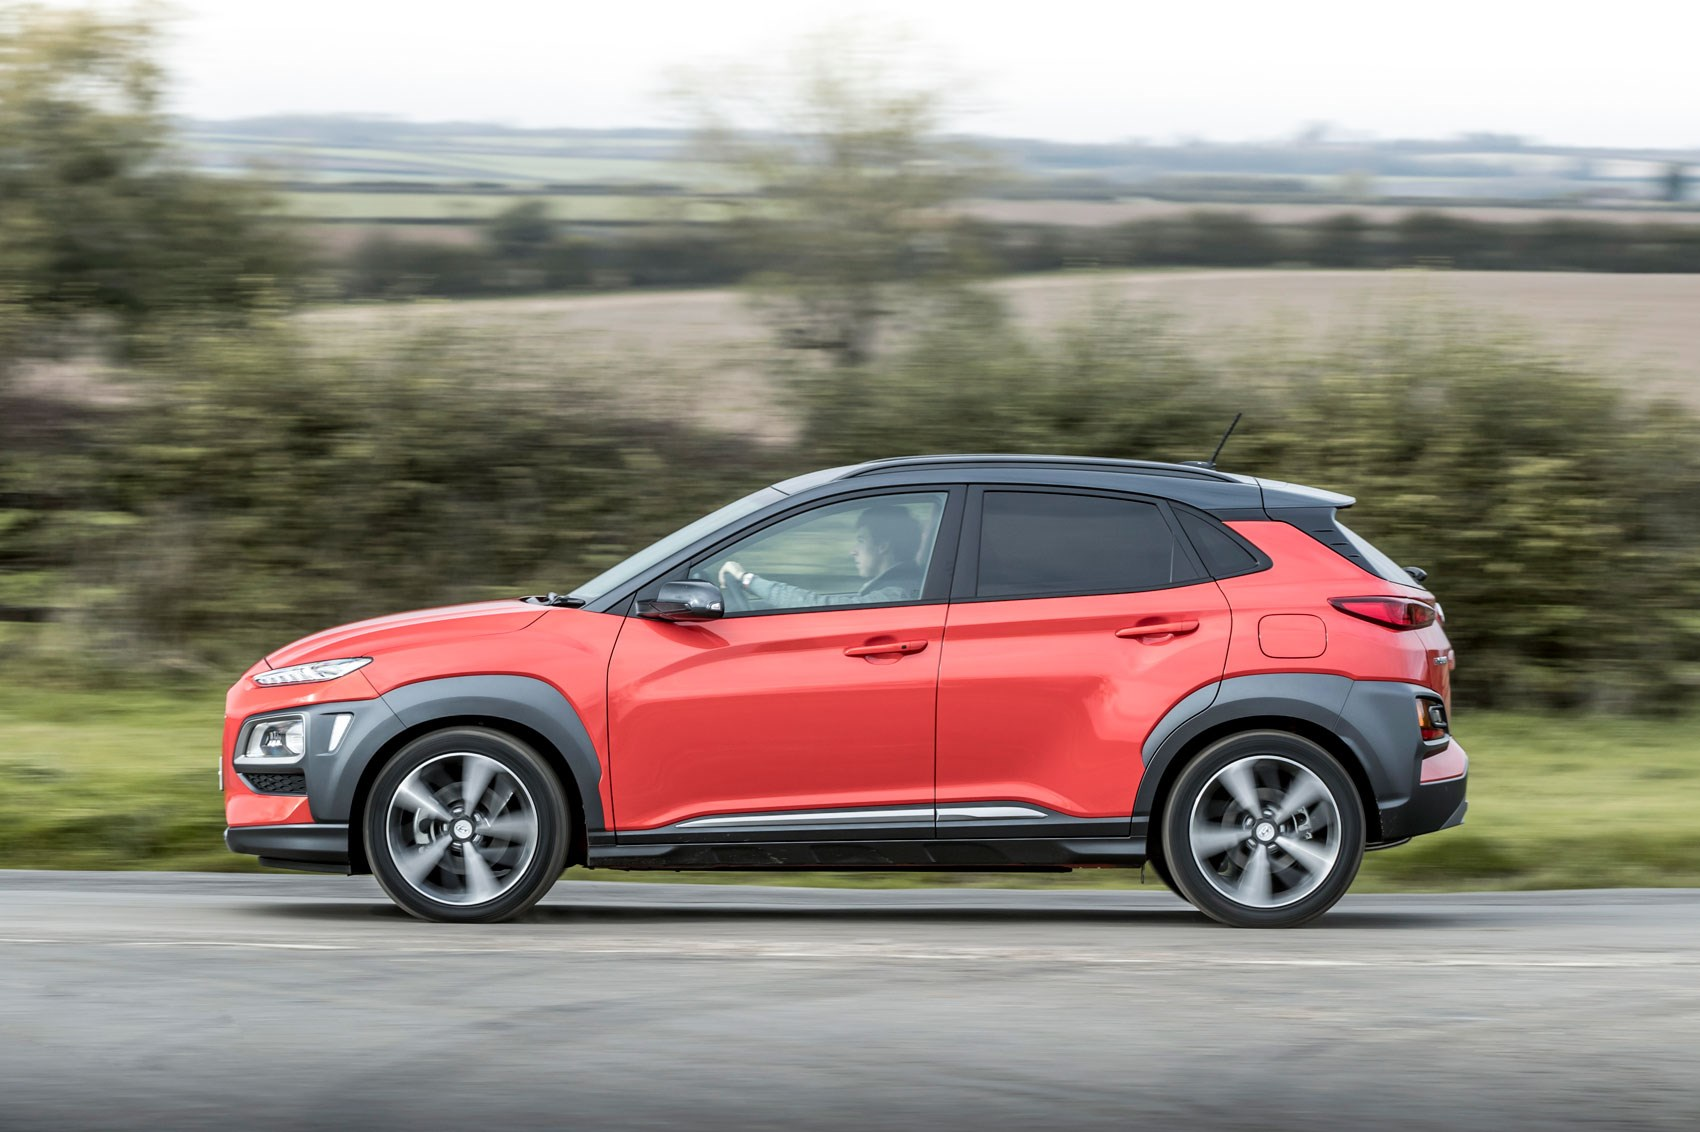 Hyundai Kona Uk Review >> Hyundai Kona review | Parkers